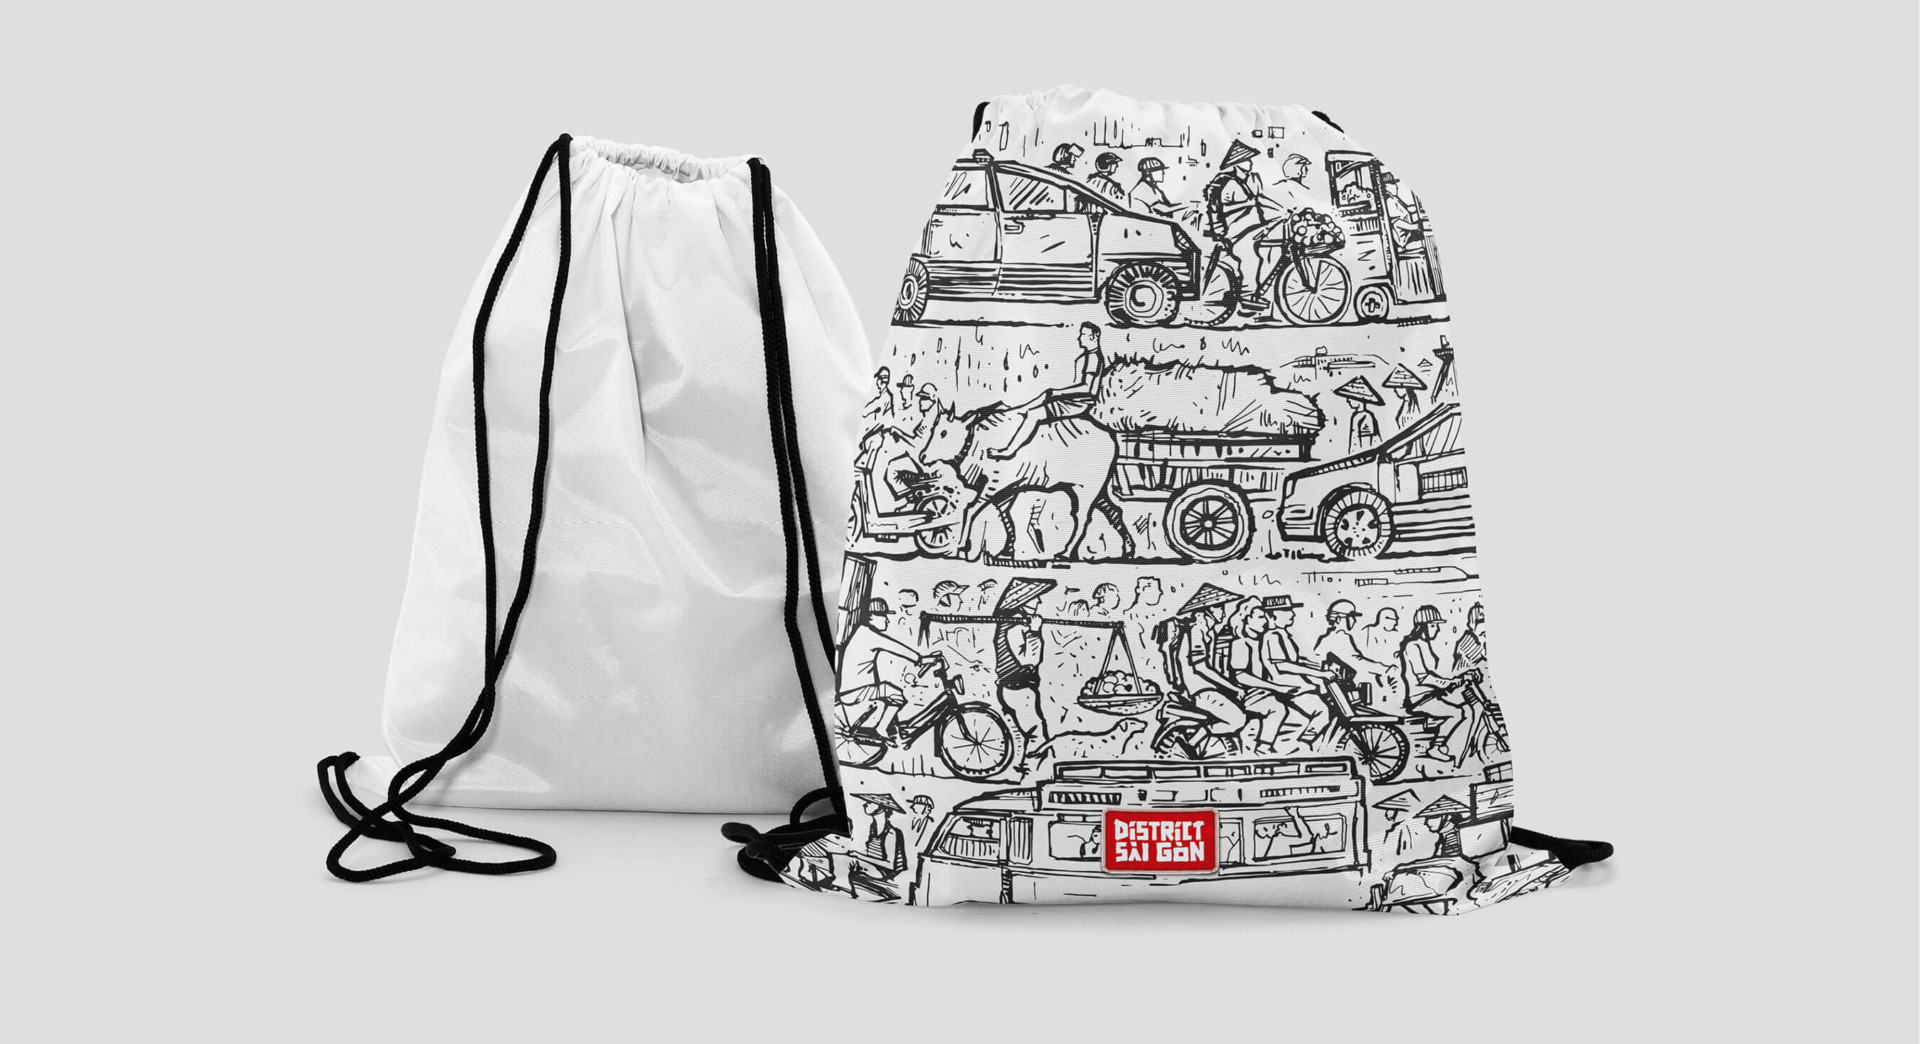 Brian Storm - Illustration & Design Gym Bag Collection / Blue Ocean Clothing